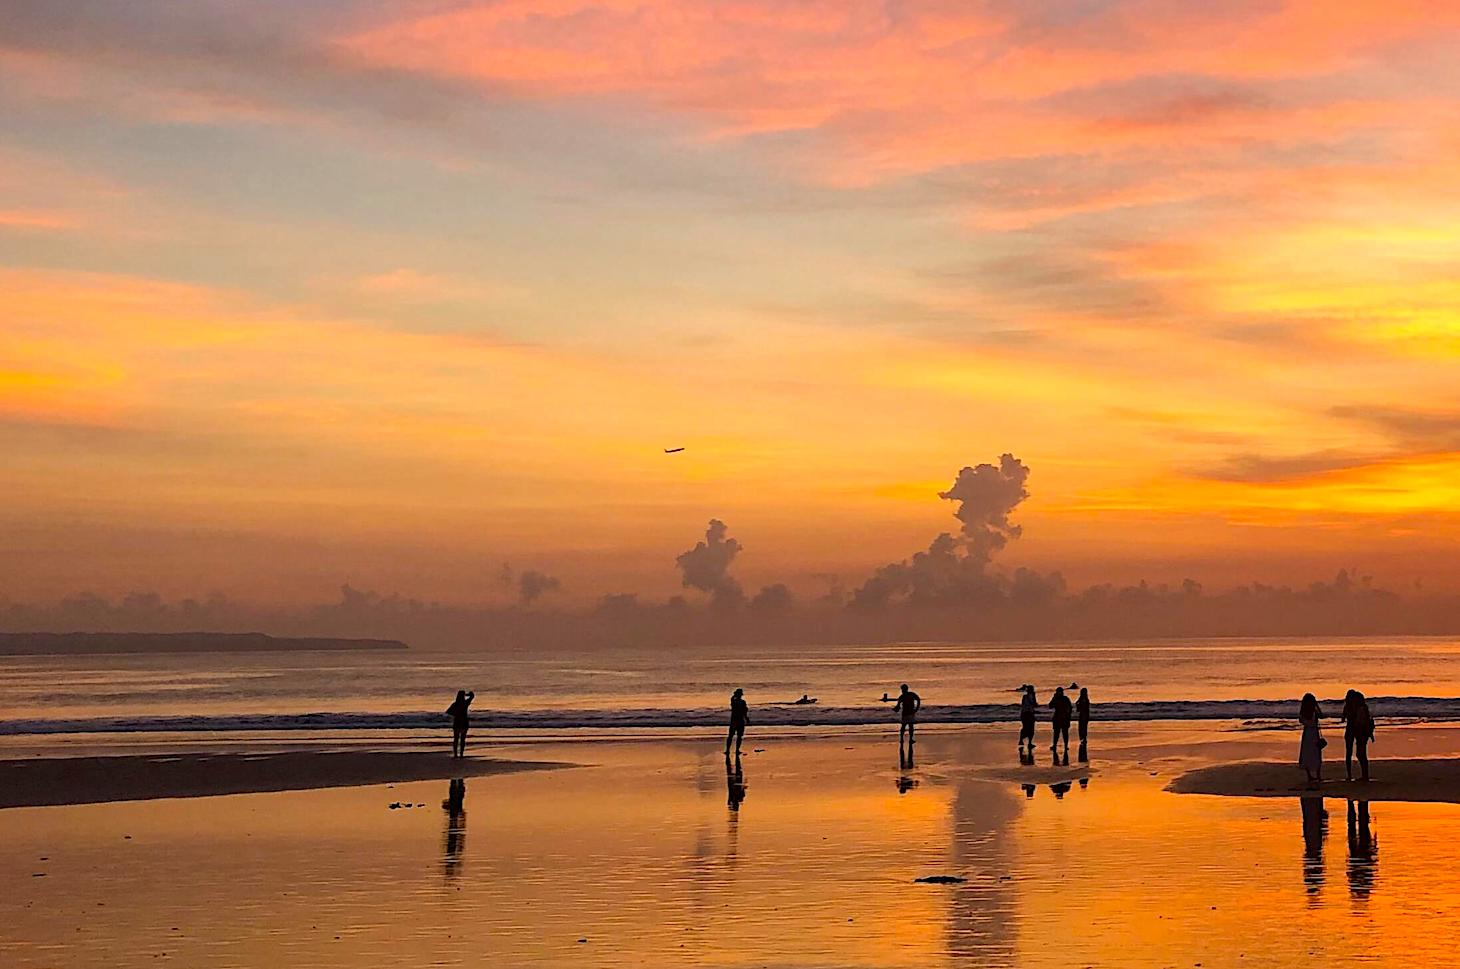 THE MAGIC OF BALI - MORE THAN A TOURIST DESTINATION